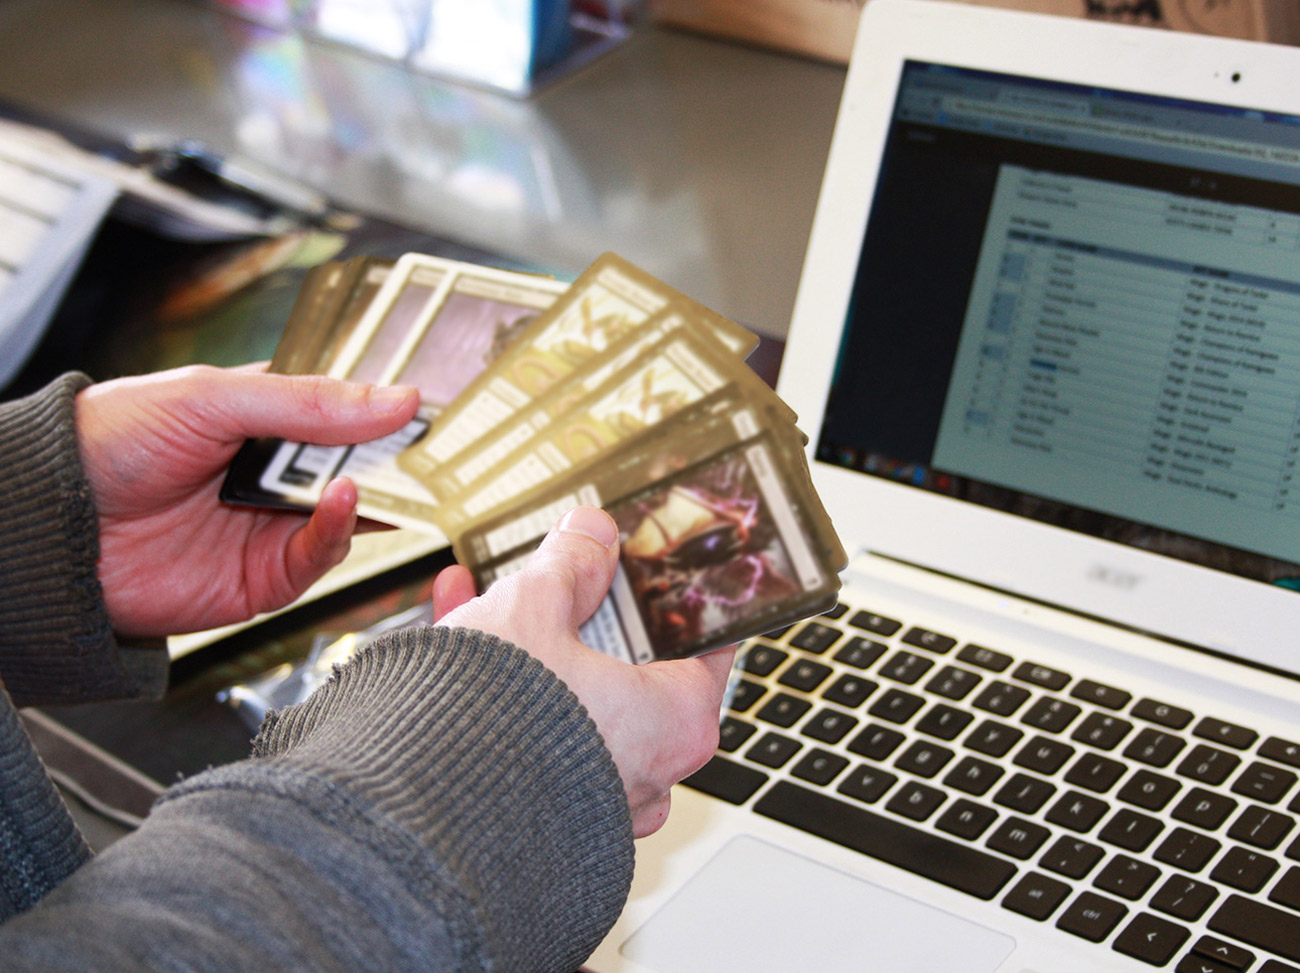 Hands holding playing cards in front of laptop with screen showing TCGplayer, an online marketplace focusing on collectible card gaming